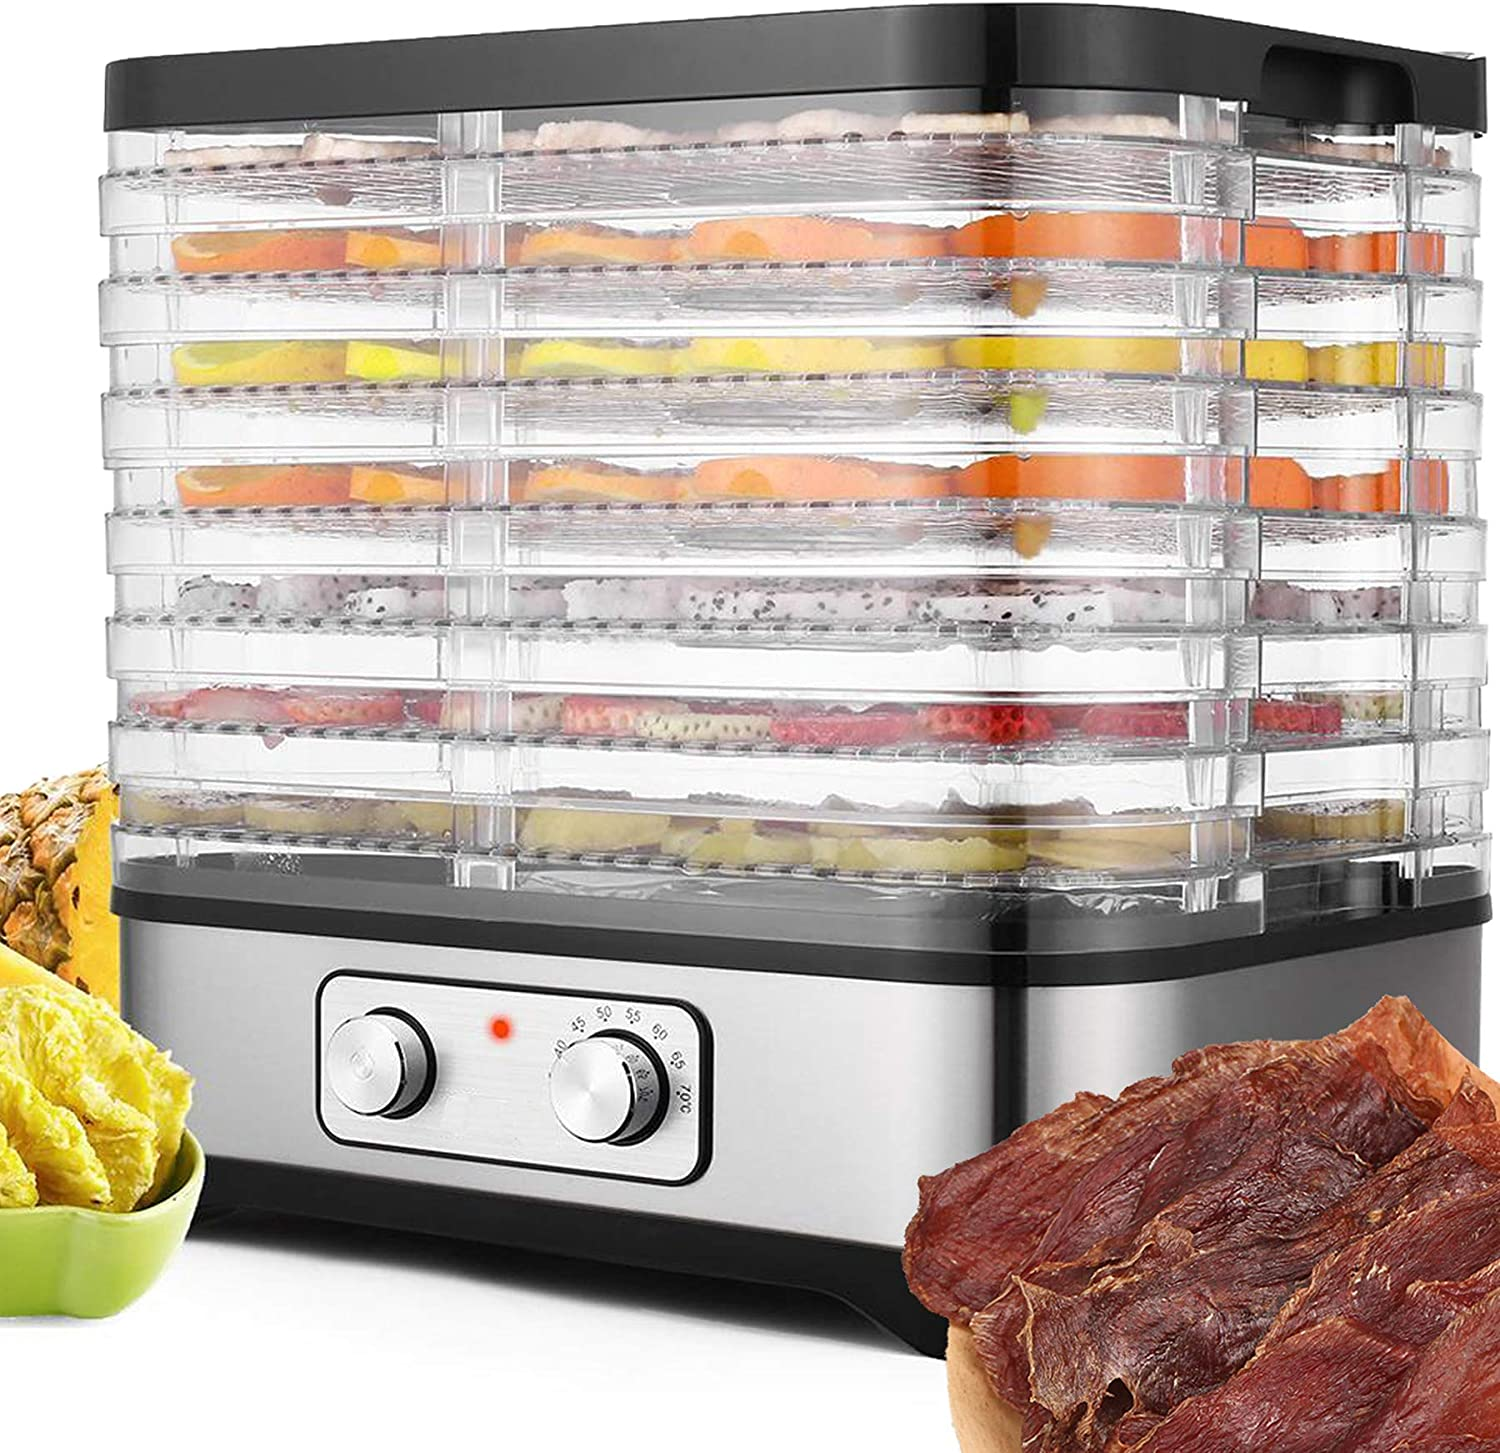 Food Dehydrator with Digital Temperature Control,Electric 7-Trays Meat Dehydrator Machine BPA Free Multi-Tier for Beef Jerky/Meat/Fruit/Nut/Herb/Vegetable